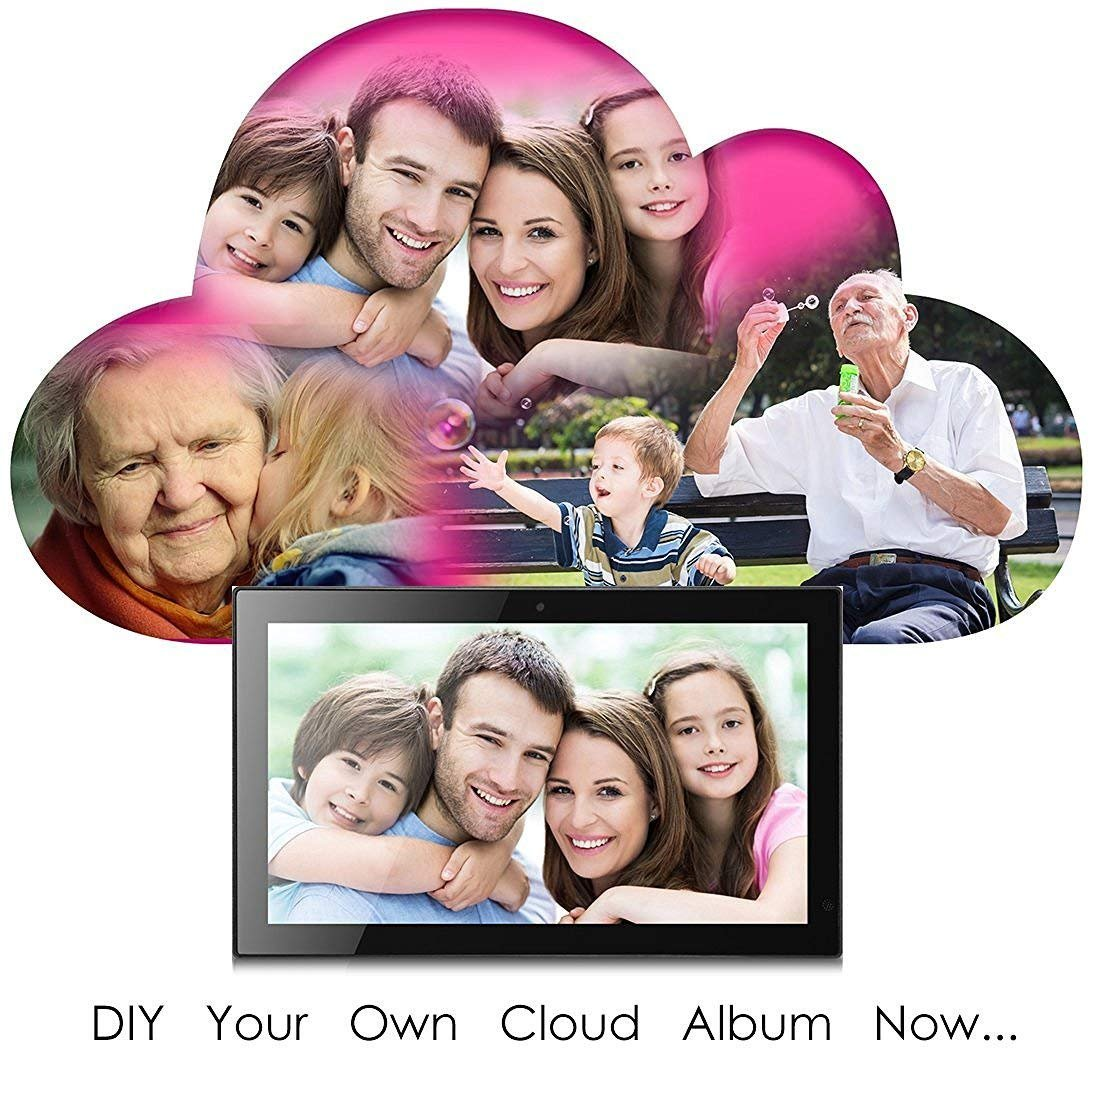 19'' WiFi Cloud Frame with Remote Control, 20GB Free Cloud Storage, Music, Movie, Social Media, Wall mountable by Sungale (Image #2)